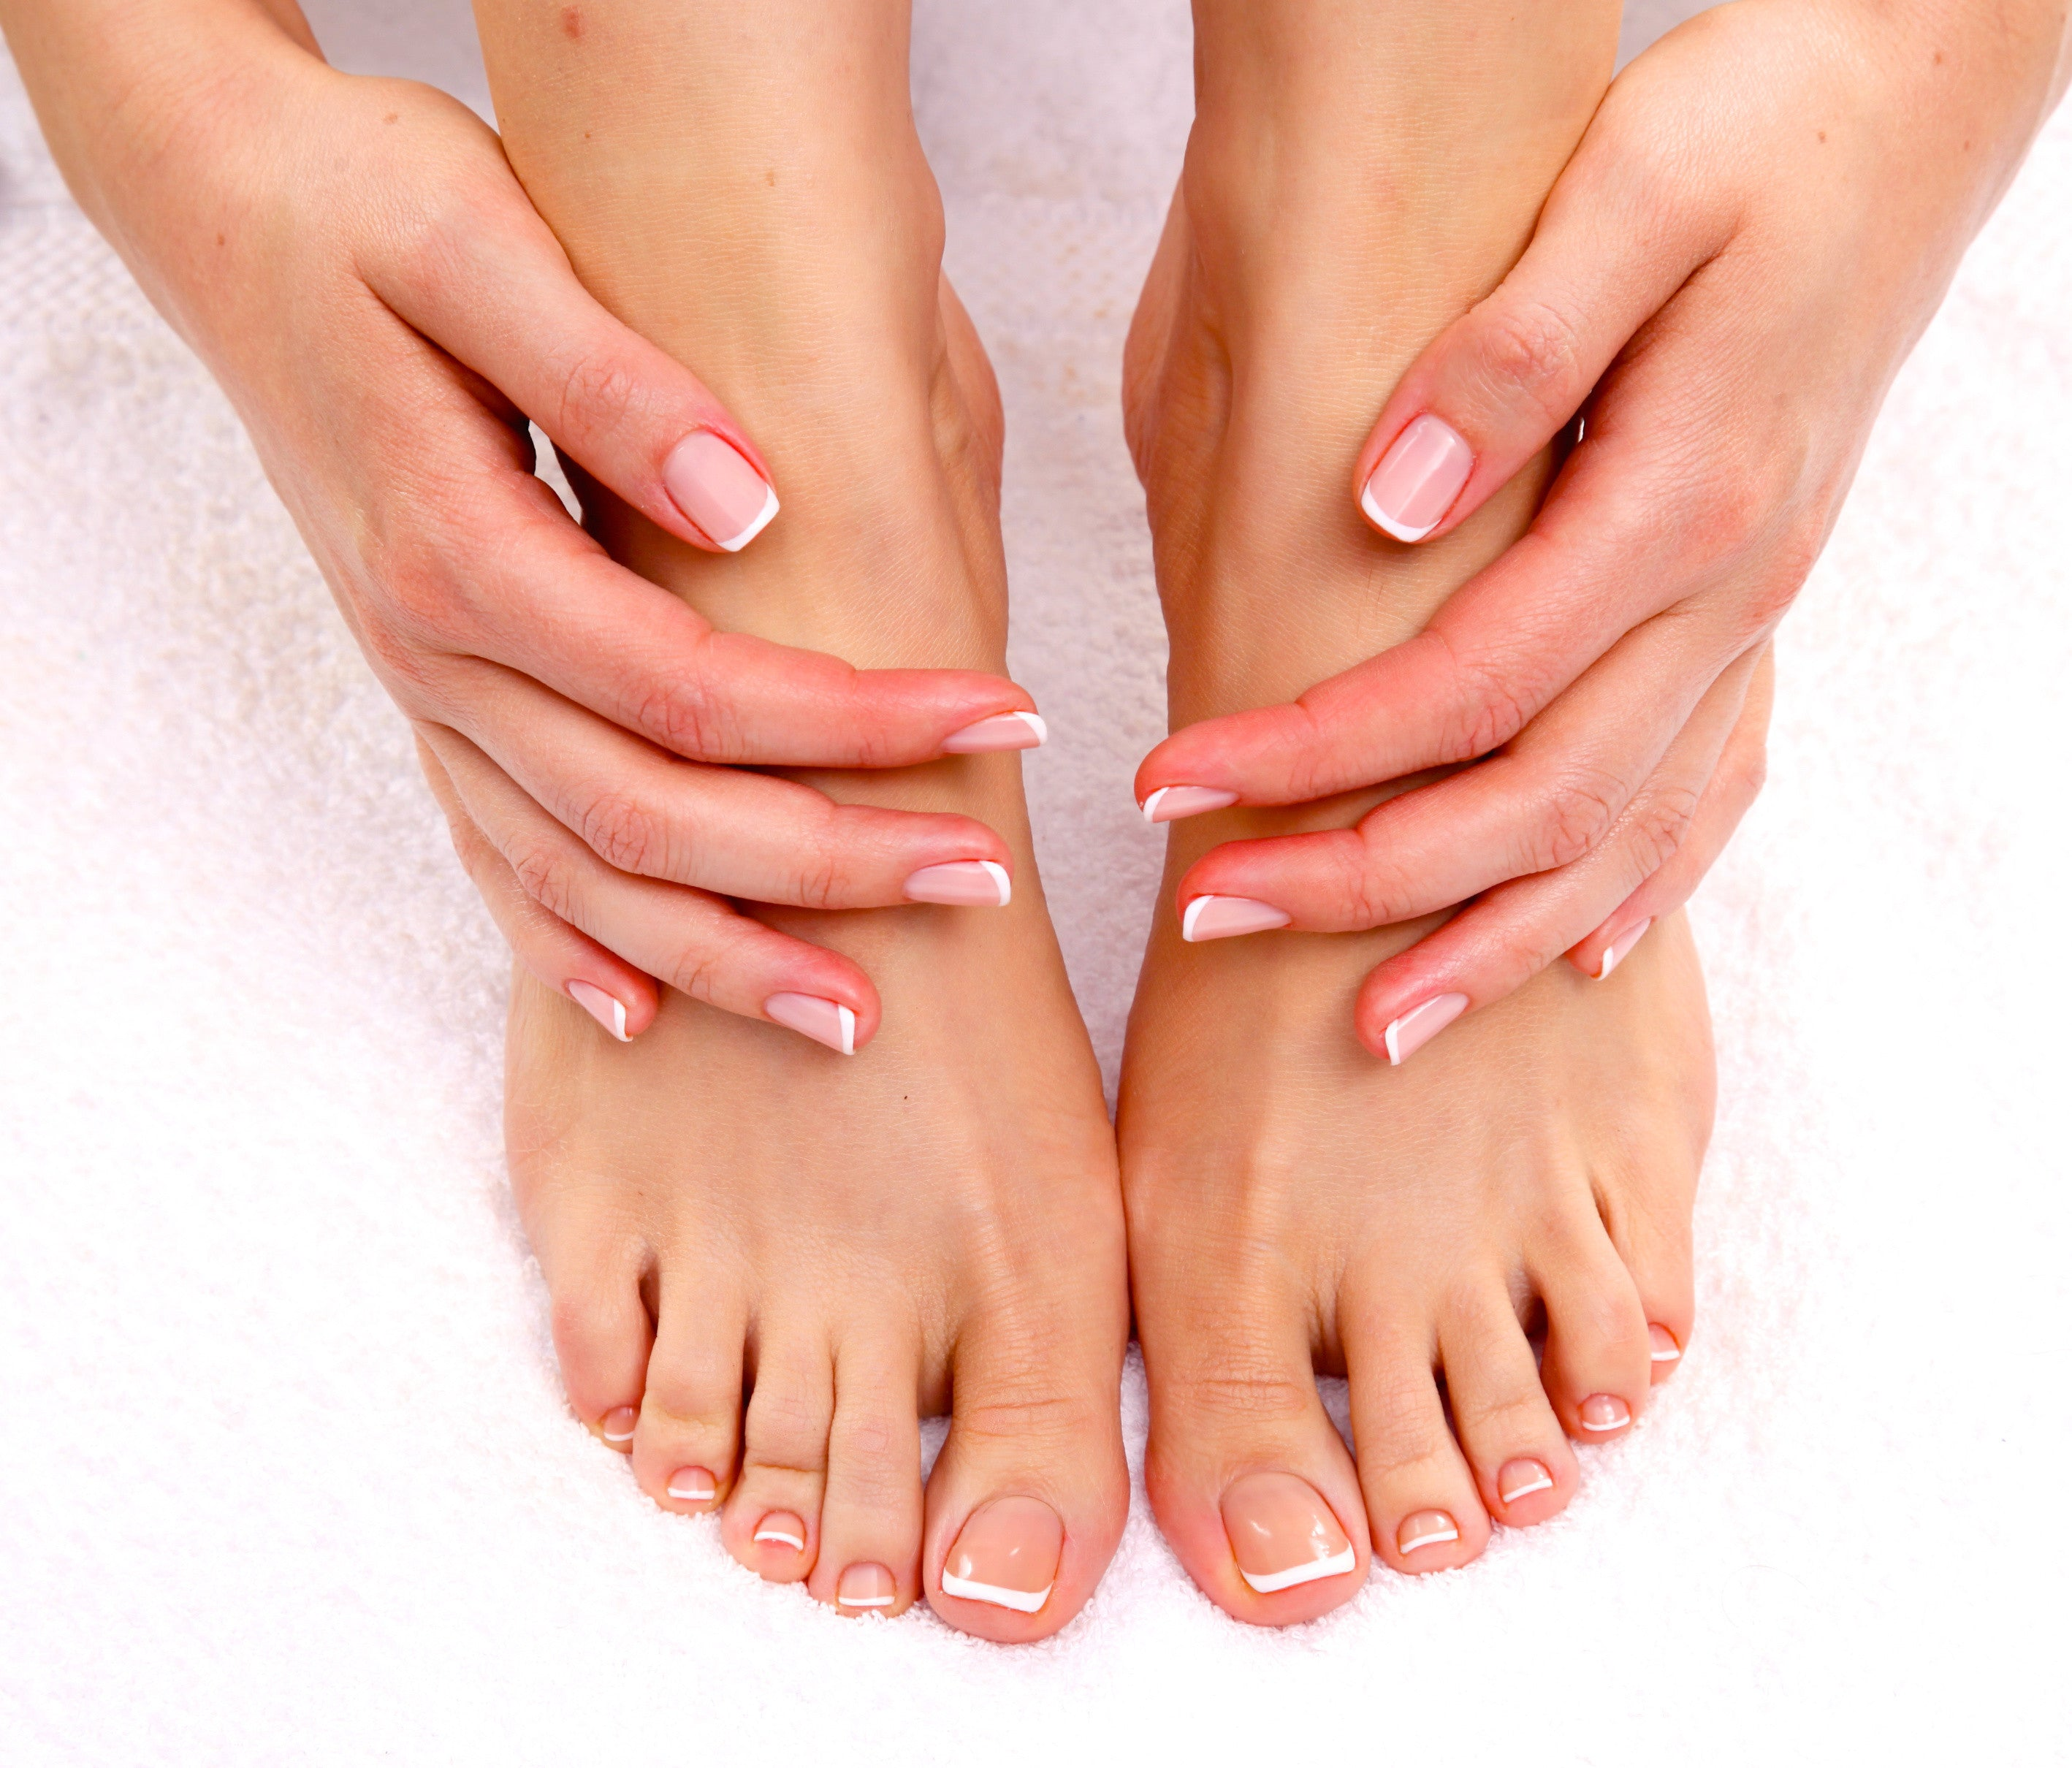 Best All Natural Oils and Care Suggestions for Healthy Nails and Cuticles